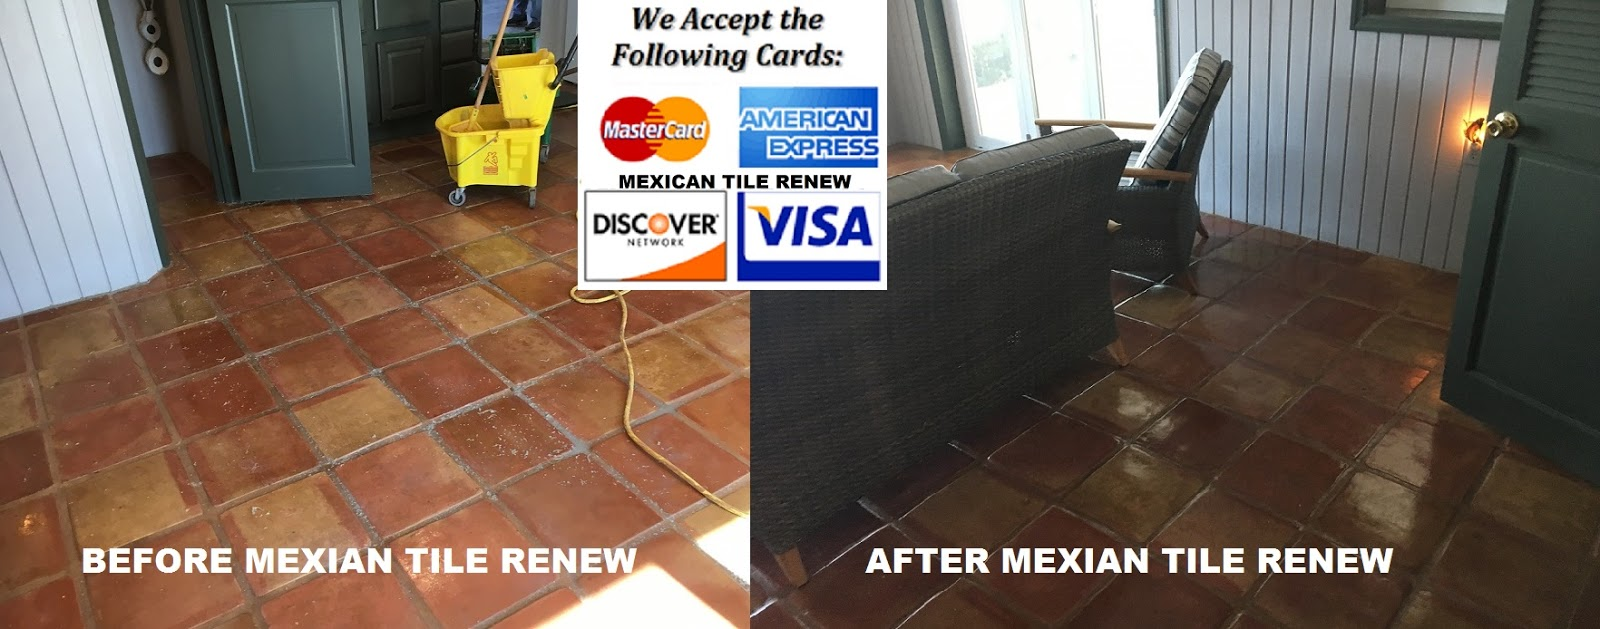 Mexican tile cleaning sealing mexican tile renew fort myers saltillo tile cleaned sealed never steam clean mexican tile floors or use vinegar acetic acid it will ruin the finish we do not use solvent based dailygadgetfo Image collections